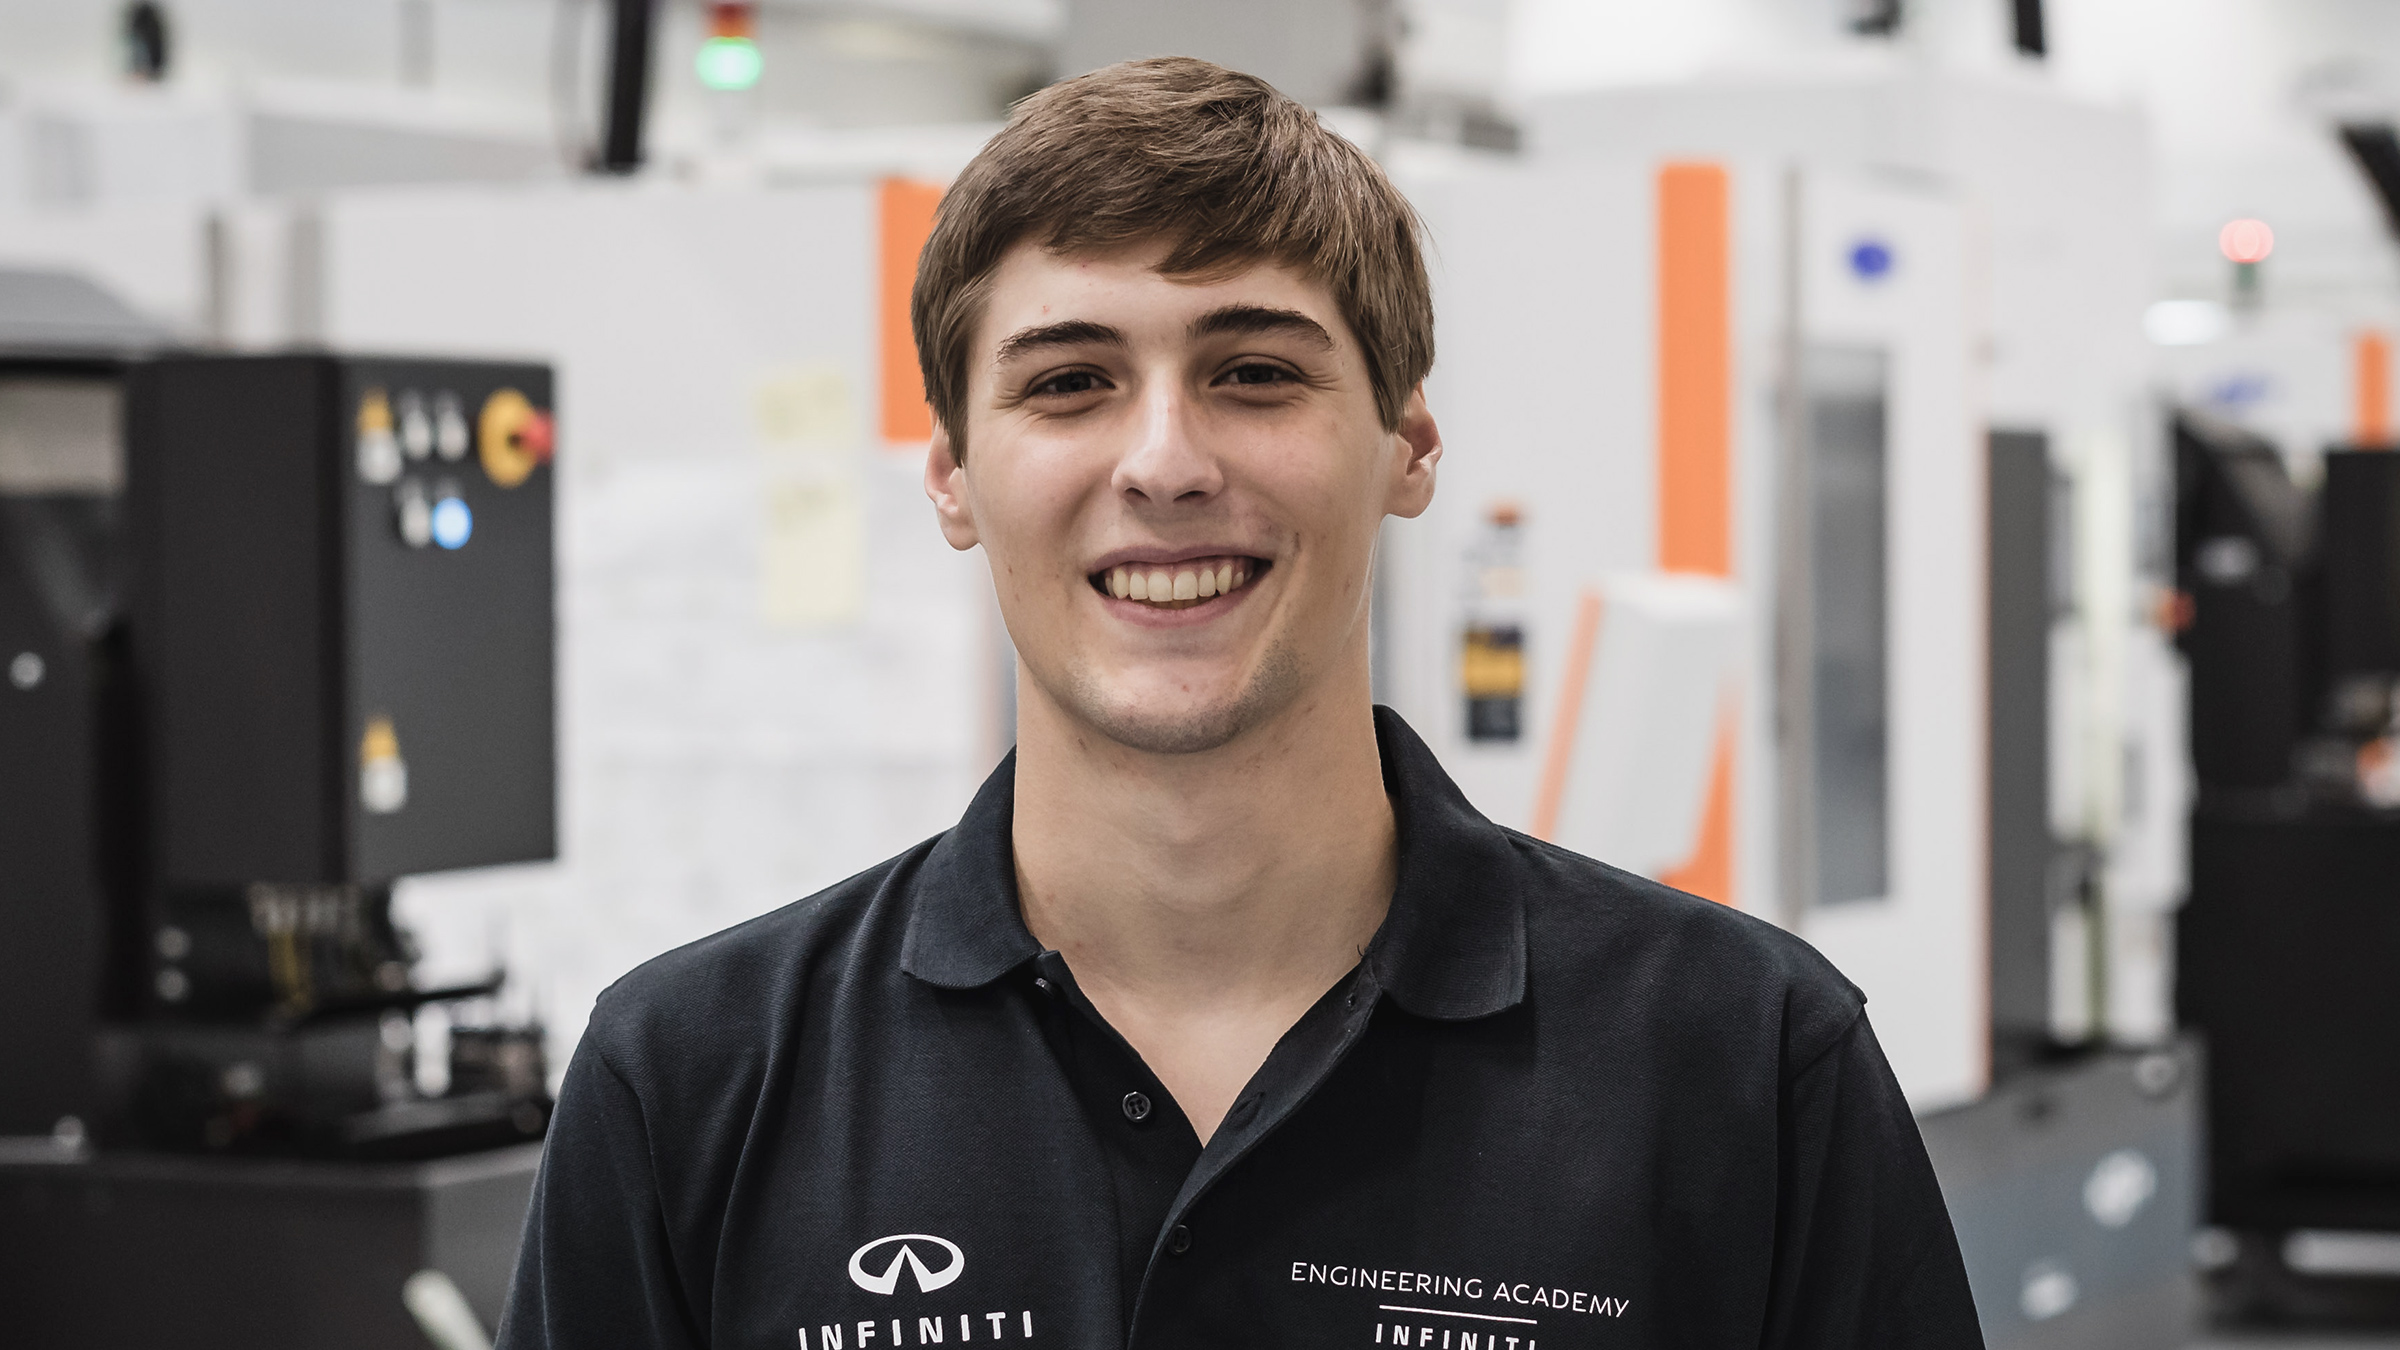 infiniti-engineering-academy-matthew-crossan